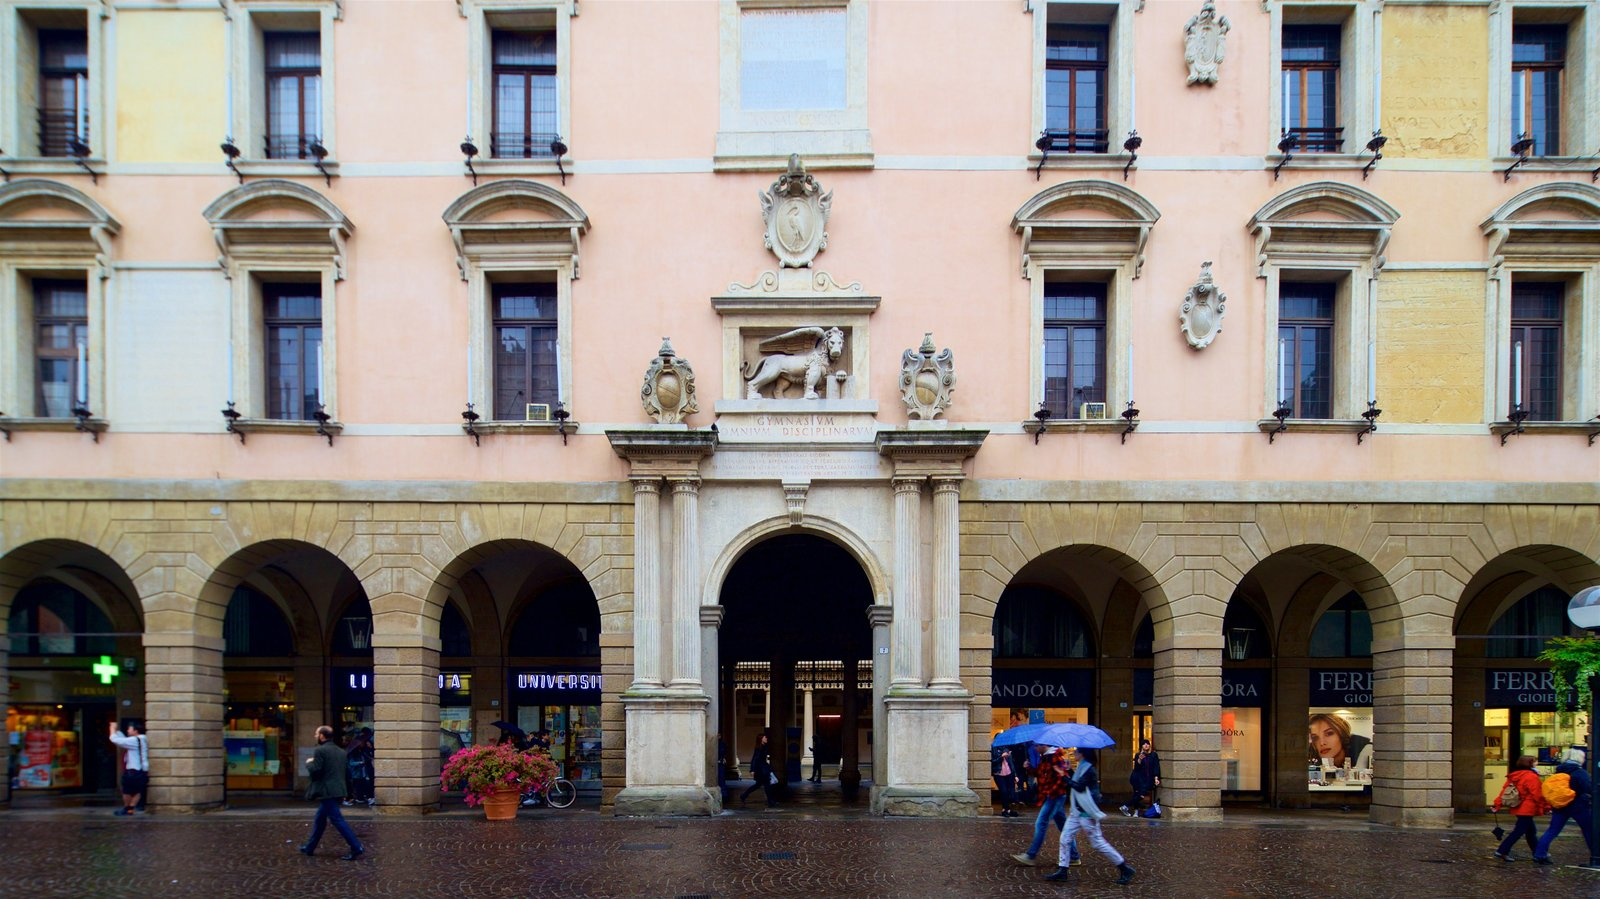 Palazzo del Bò showing heritage elements and street scenes as well as a small group of people